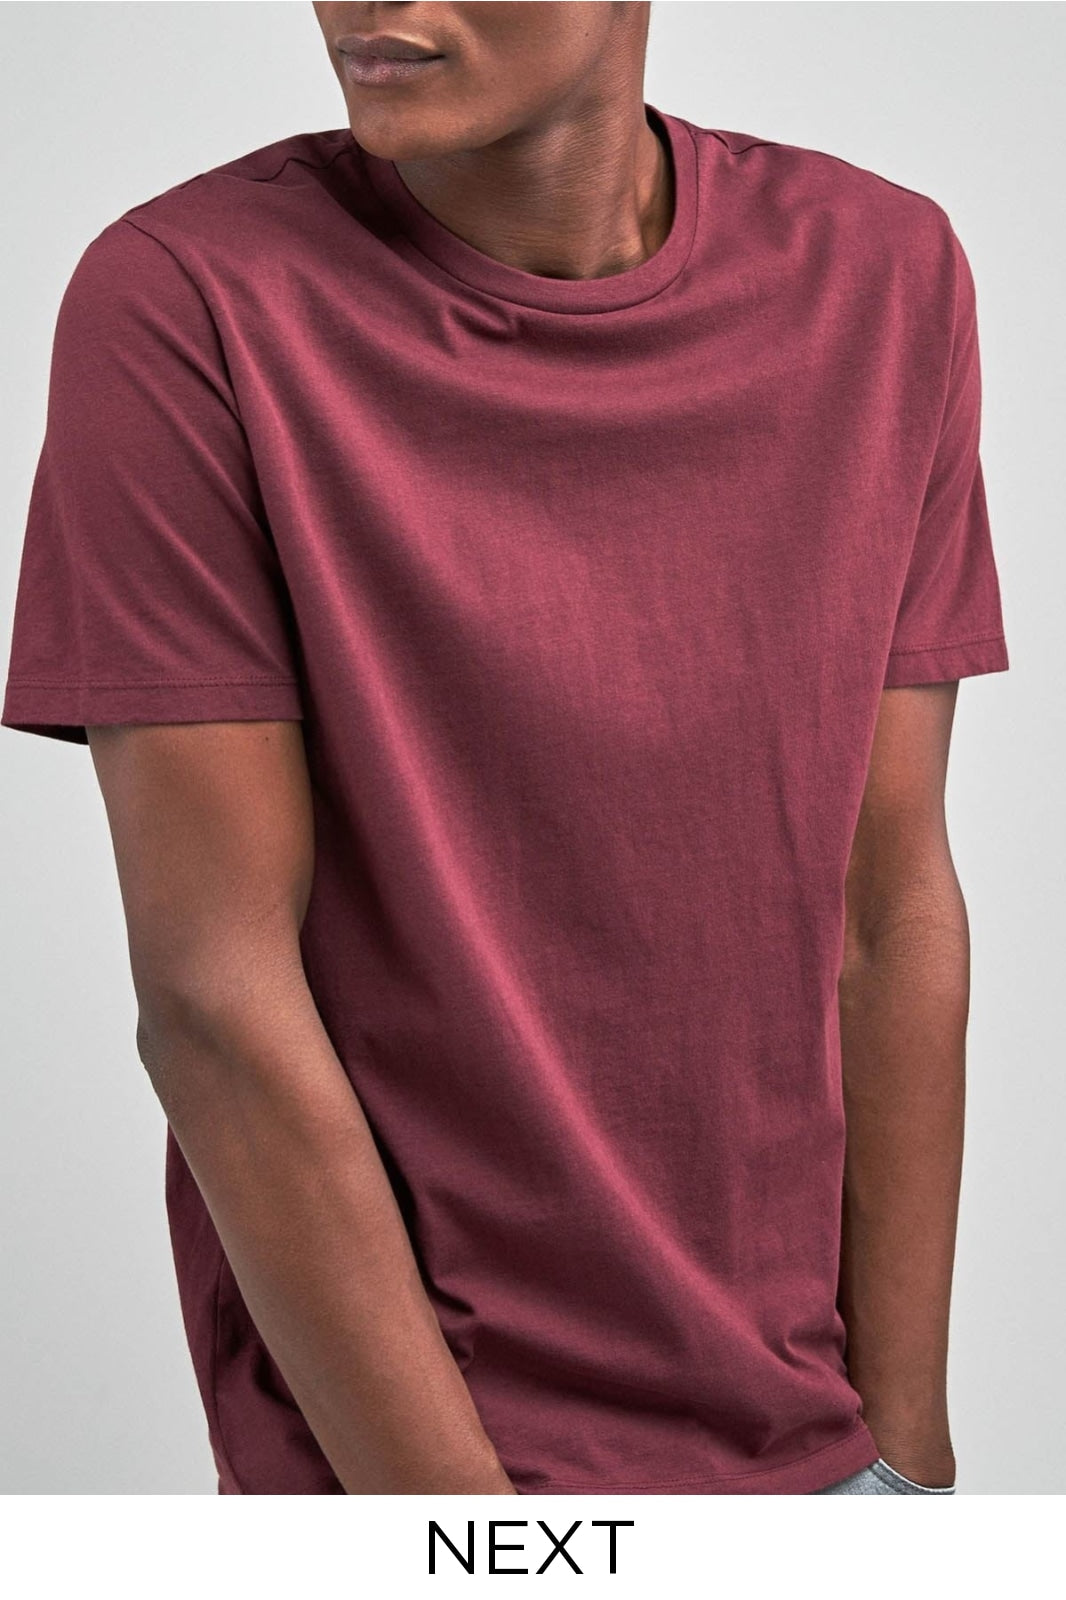 Next Ex Next Crew Neck Slim Fit T-Shirt | XL / Burgundy Secret Label